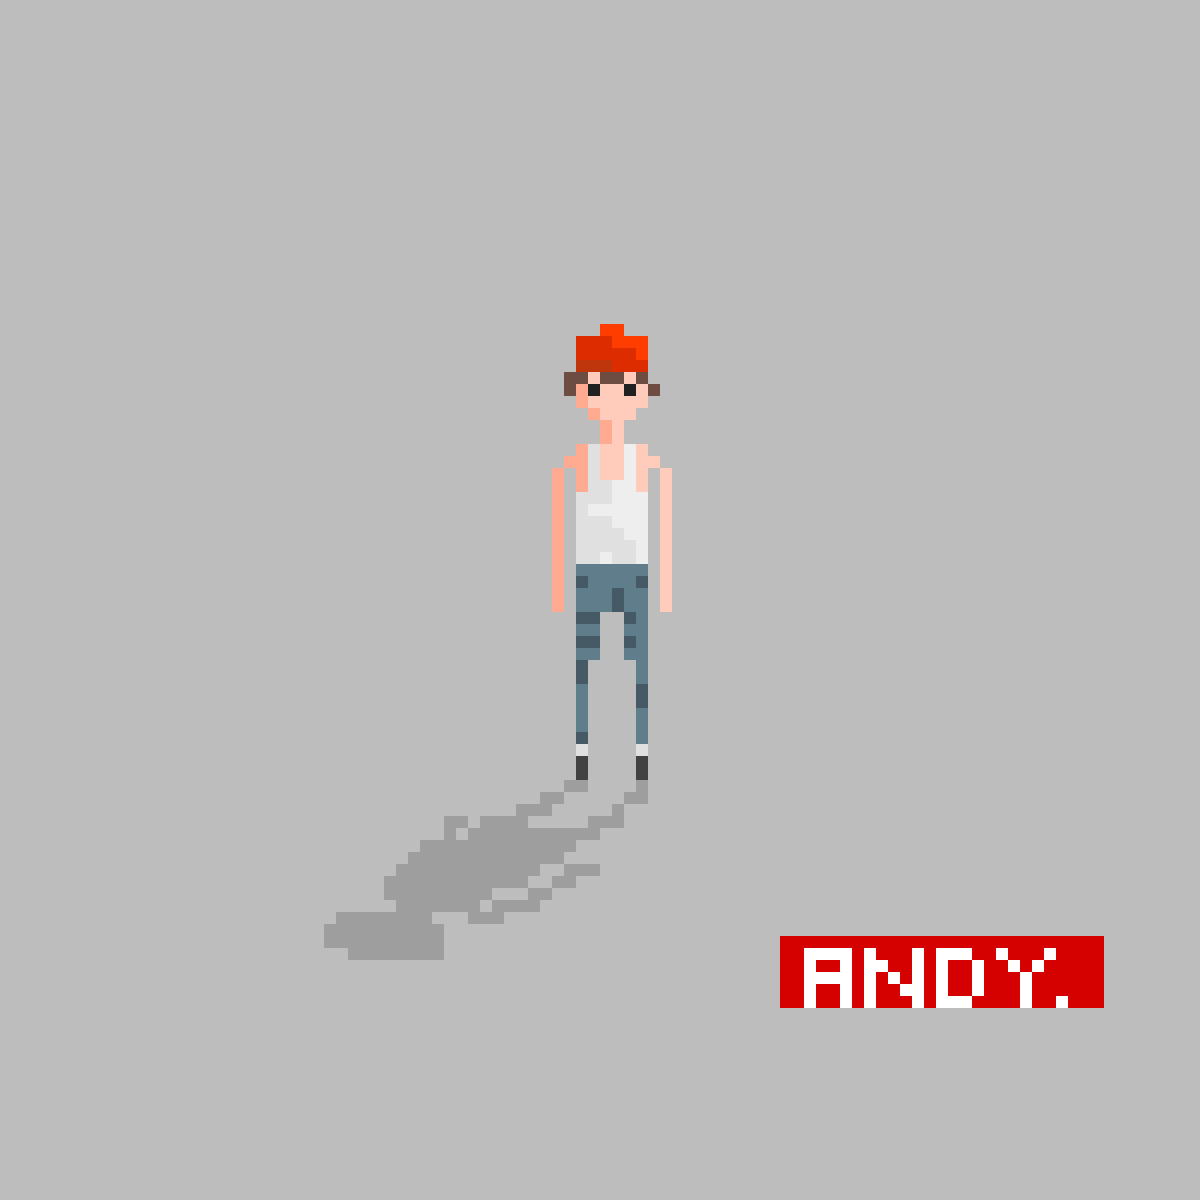 Andy by pixelation